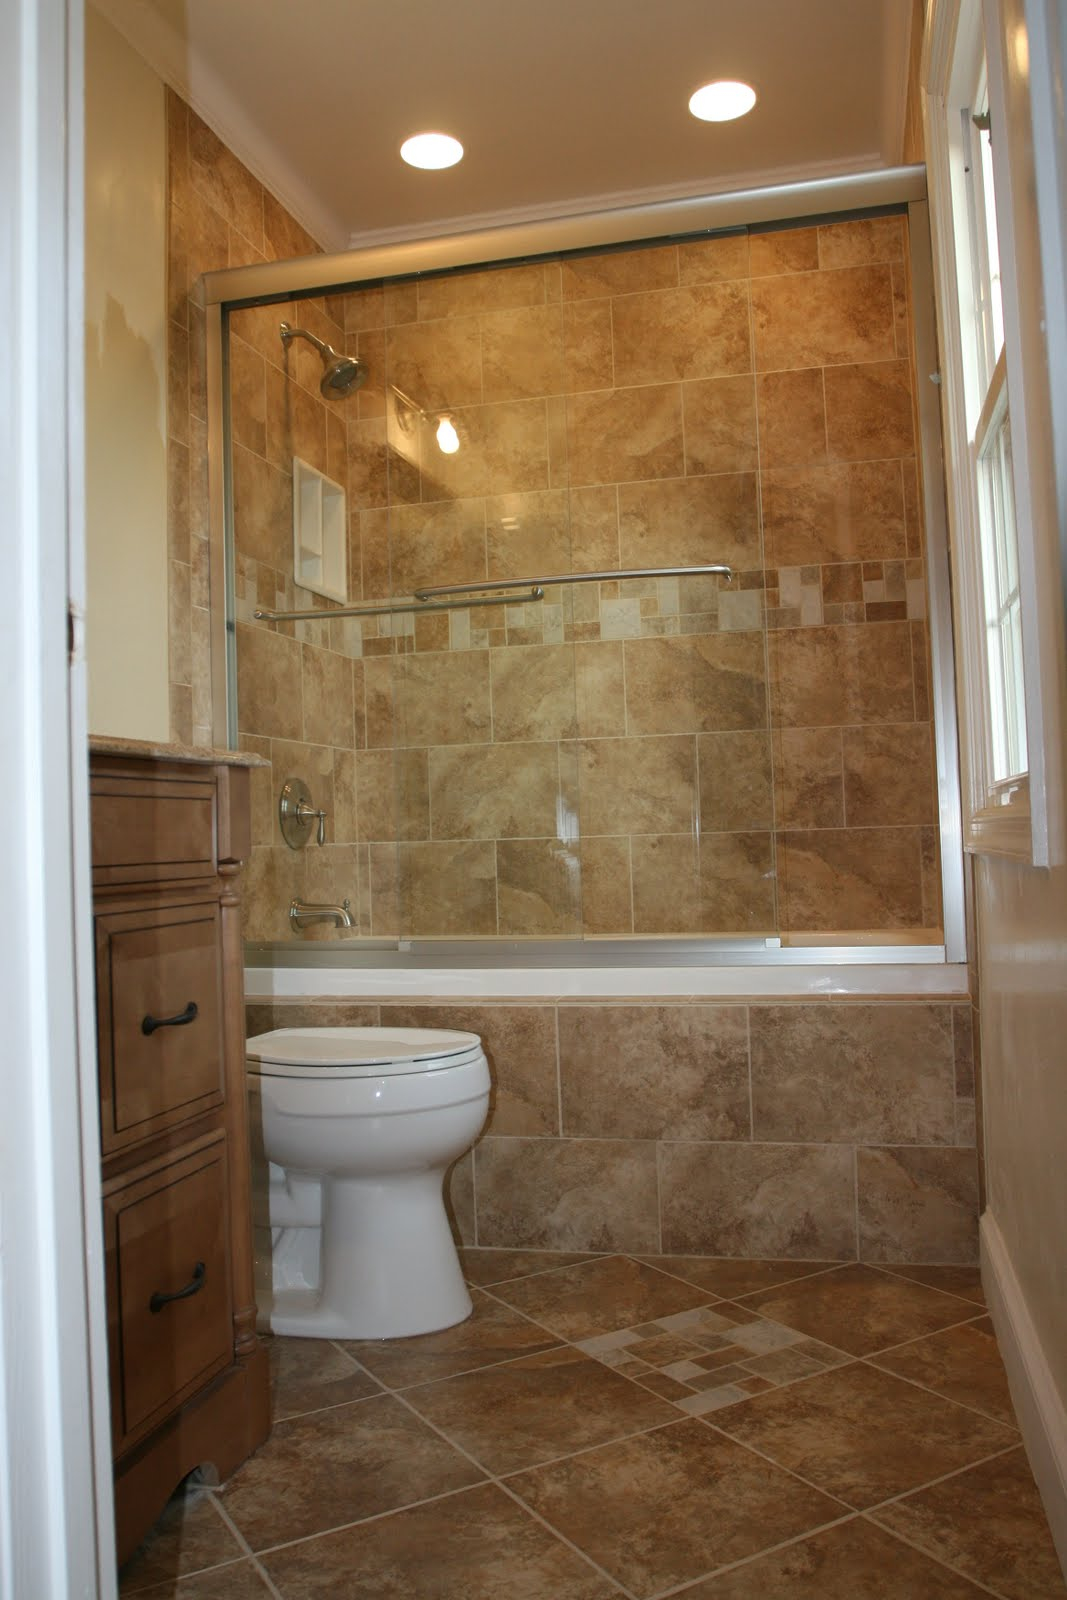 Bathroom remodeling design ideas tile shower niches bathroom remodeling trends design ideas Bathroom renovation design ideas